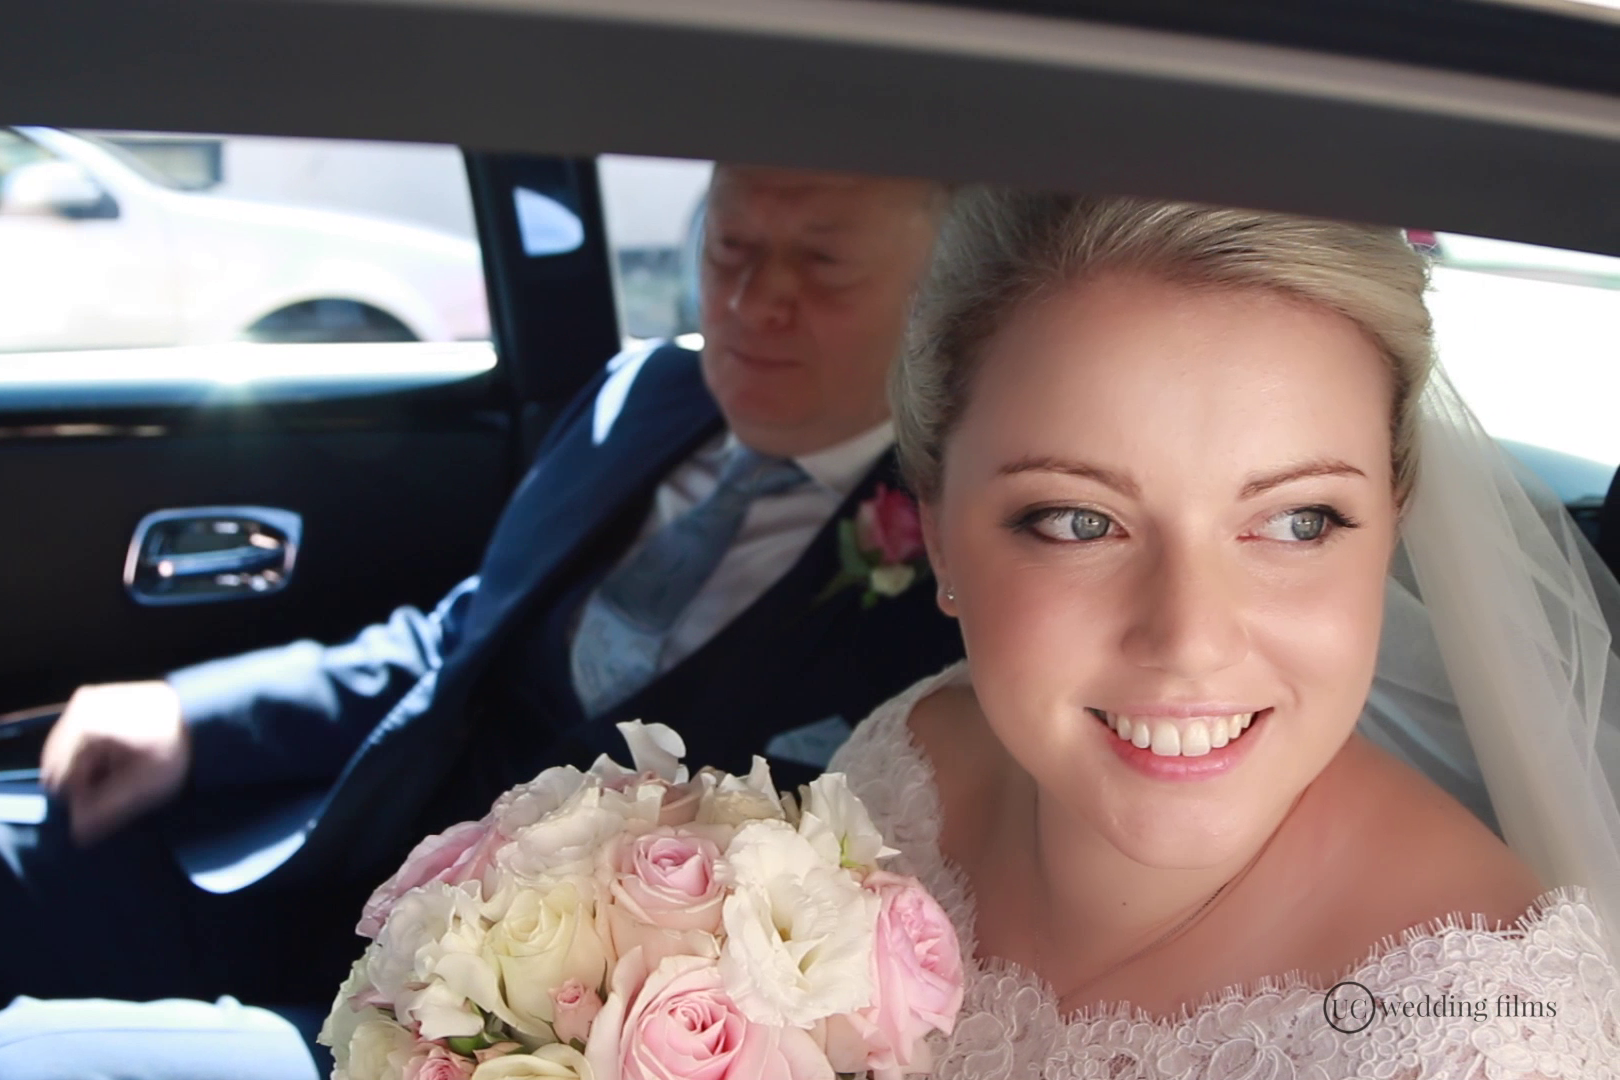 Wedding Videography in Surrey (UK)